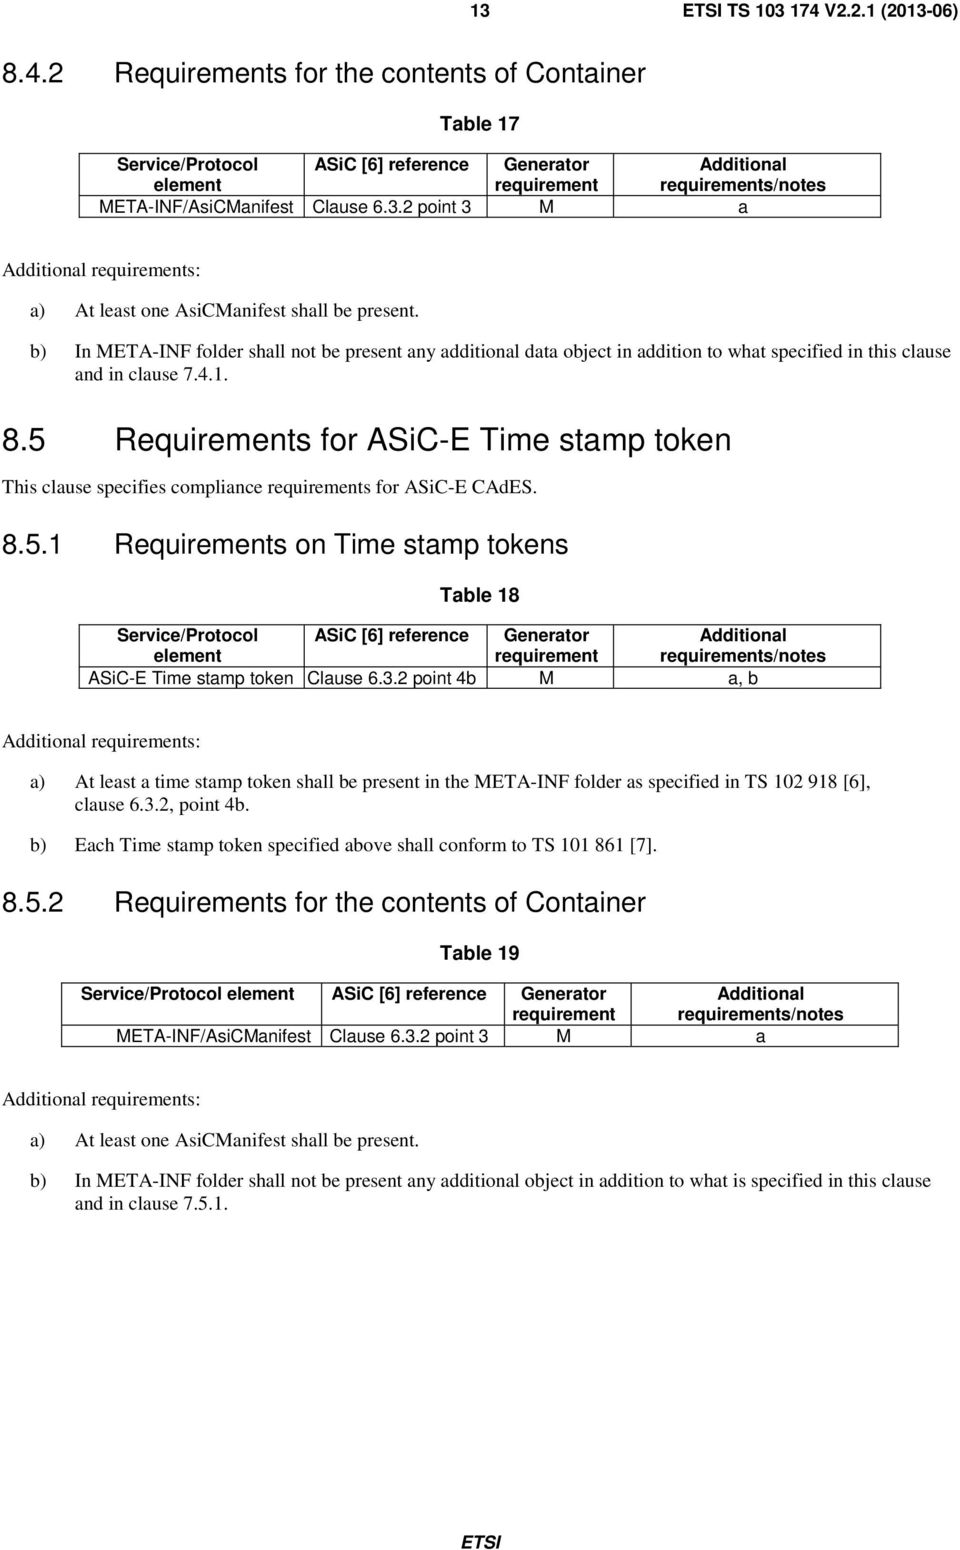 5 Requirements for ASiC-E Time stamp token This clause specifies compliance s for ASiC-E CAdES. 8.5.1 Requirements on Time stamp tokens Table 18 Service/Protocol element ASiC [6] reference ASiC-E Time stamp token Clause 6.